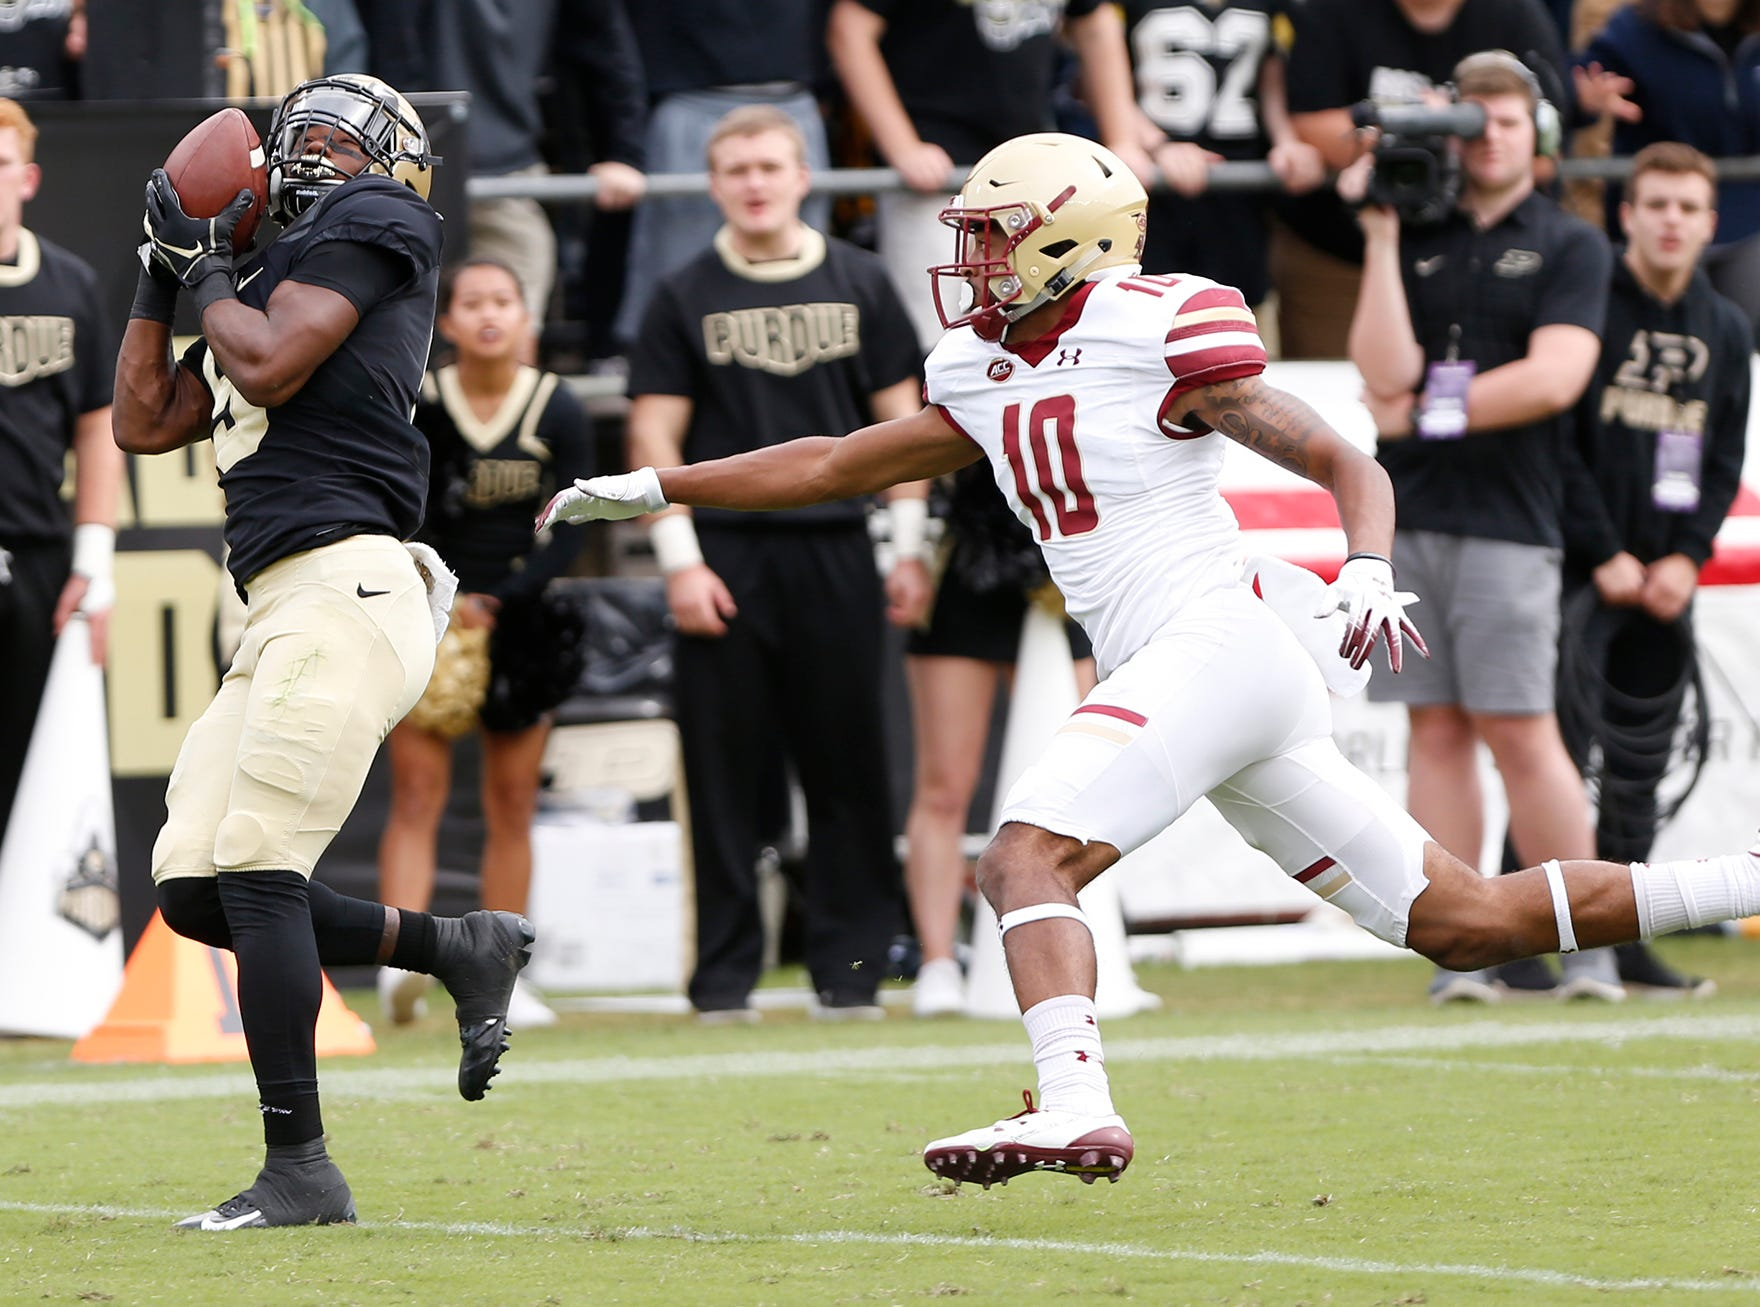 Terry Wright of Purdue with a second half touchdown reception in front of Brandon Sebastian of Boston College Saturday, September 22, 2018, in Ross-Ade Stadium. Purdue defeated Boston College 30-13.